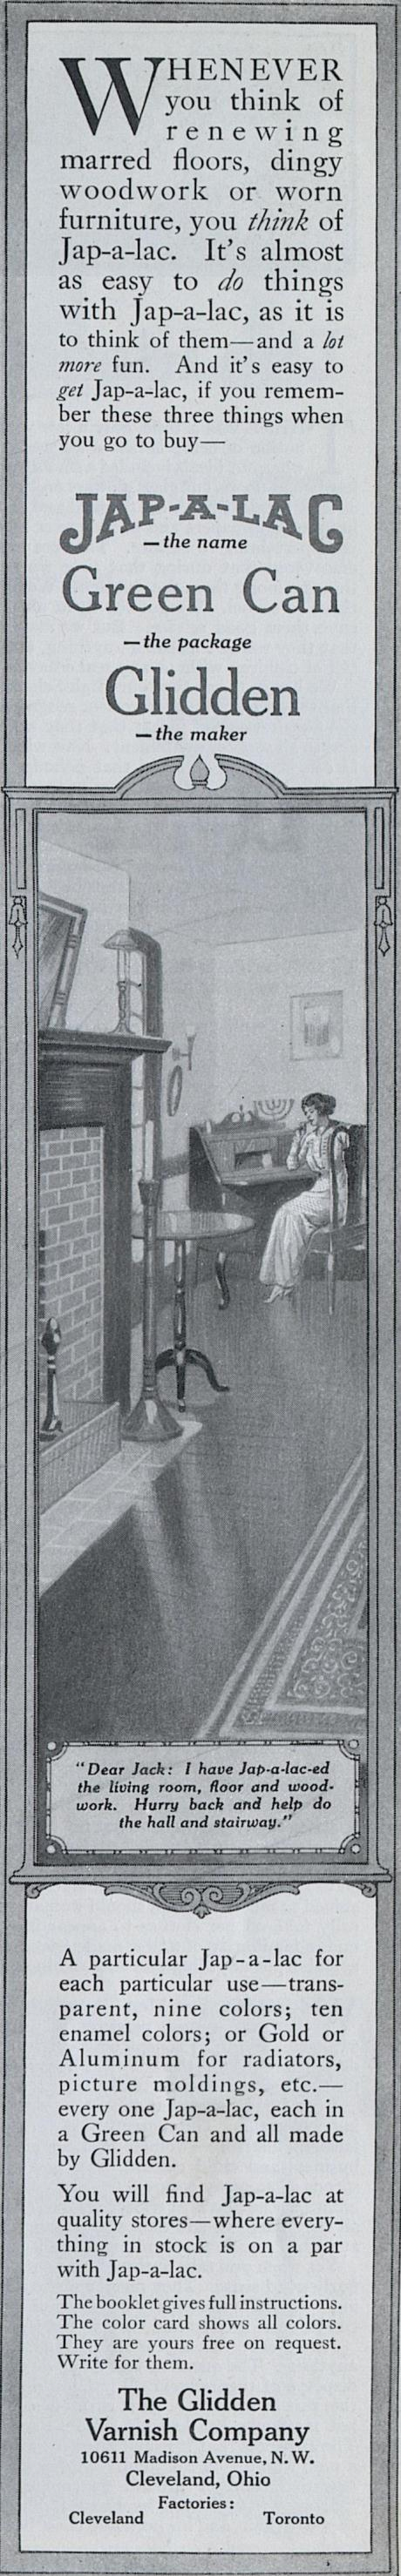 Source: Ladies Home Journal (June, 1914)